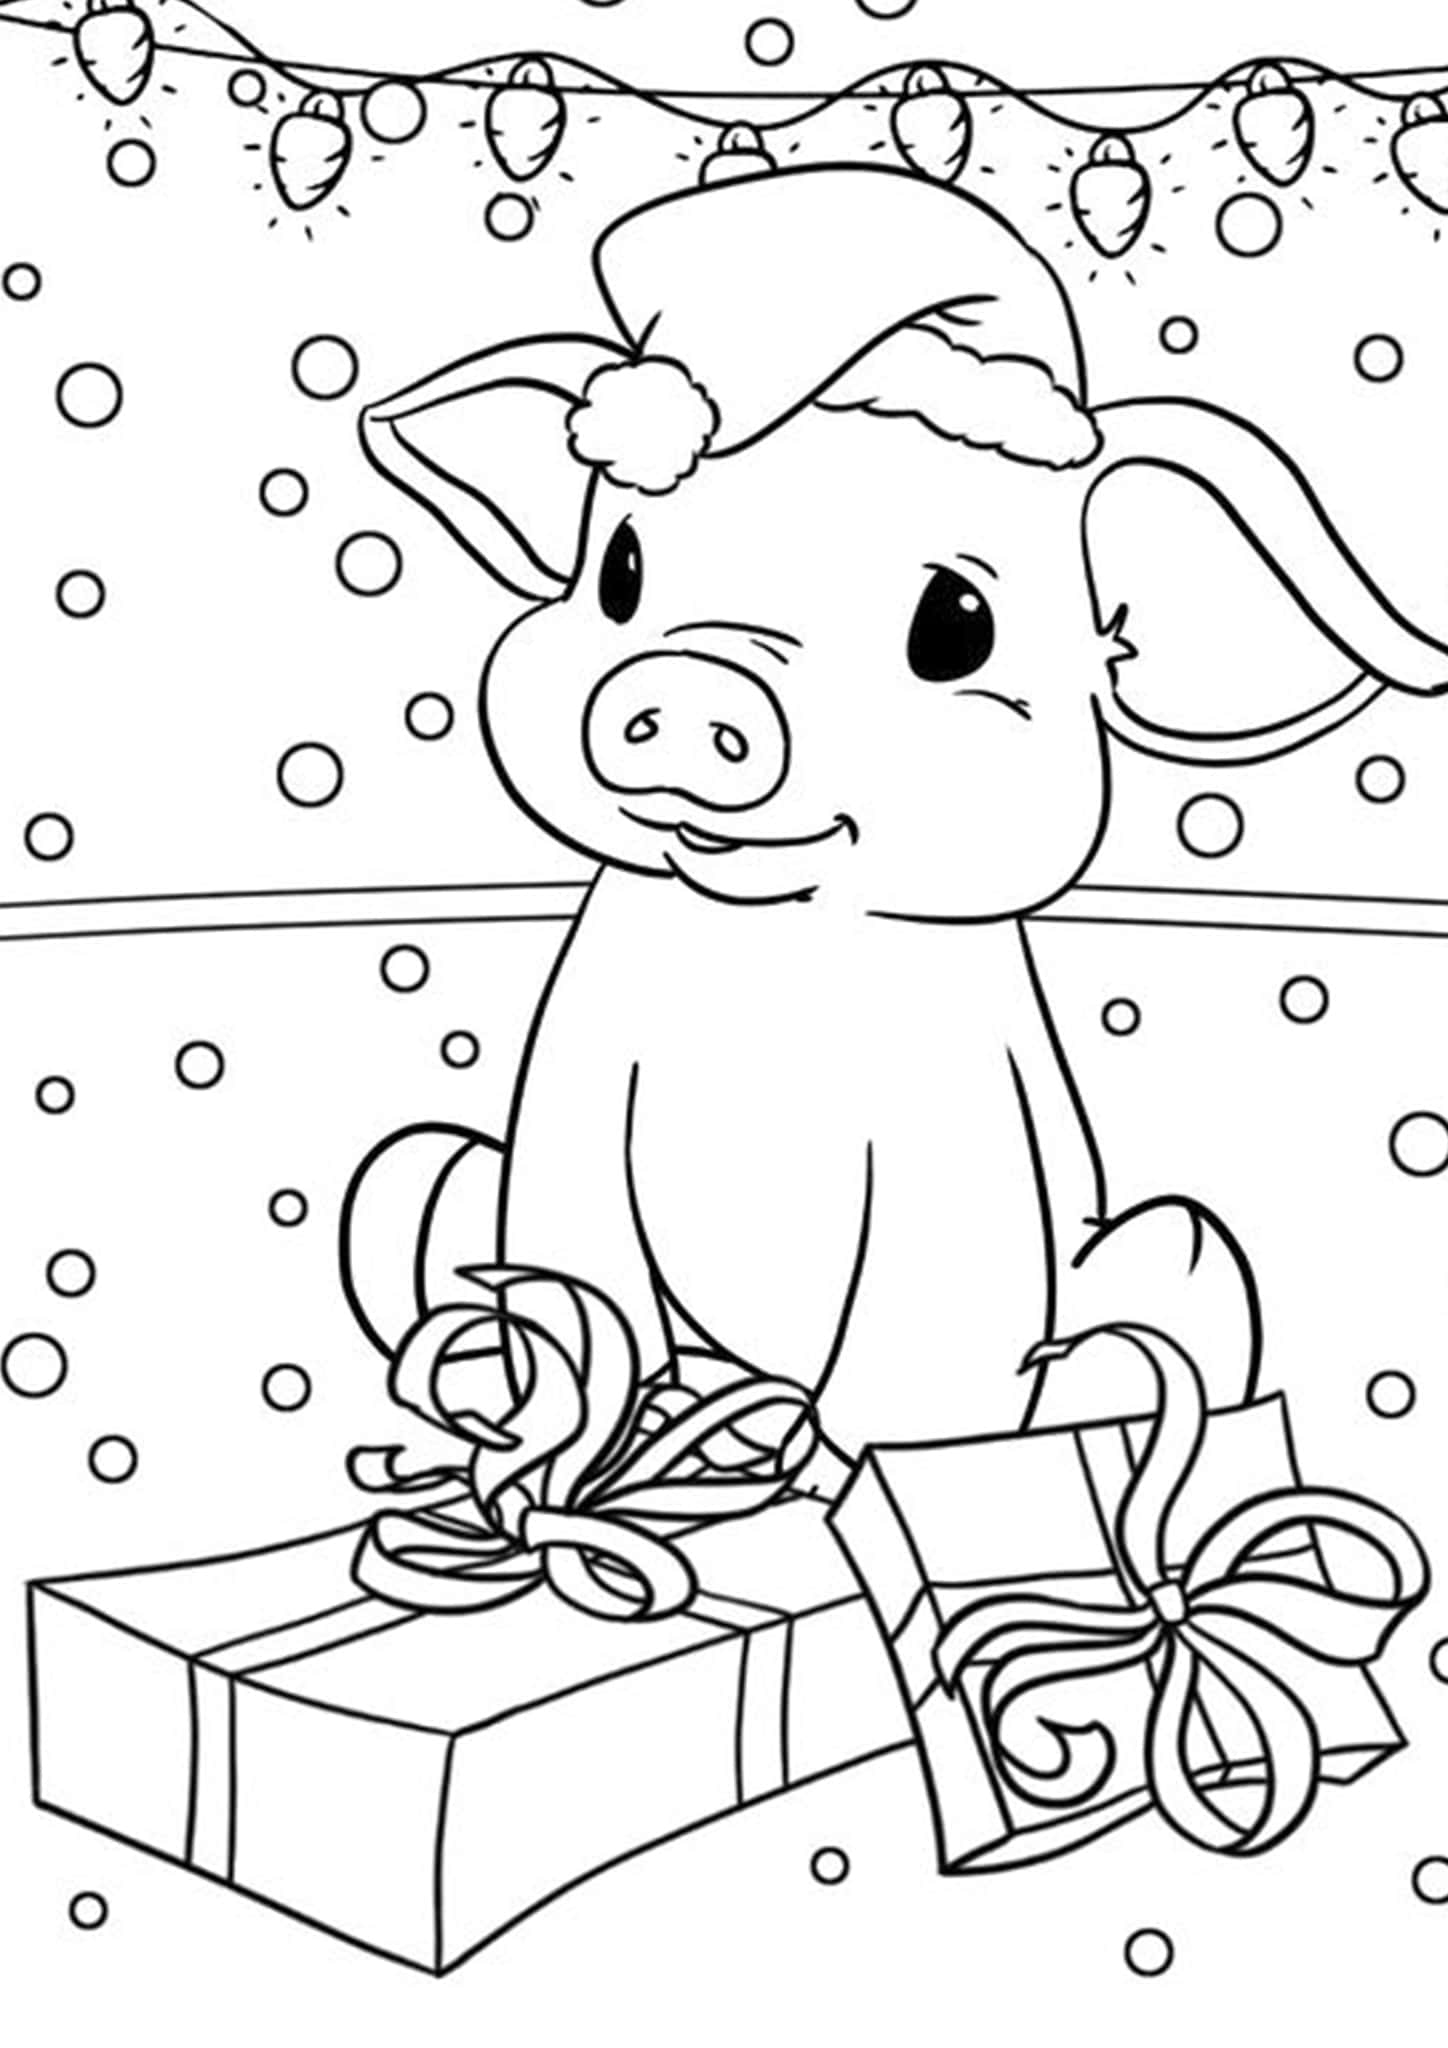 Pictures of pigs to color